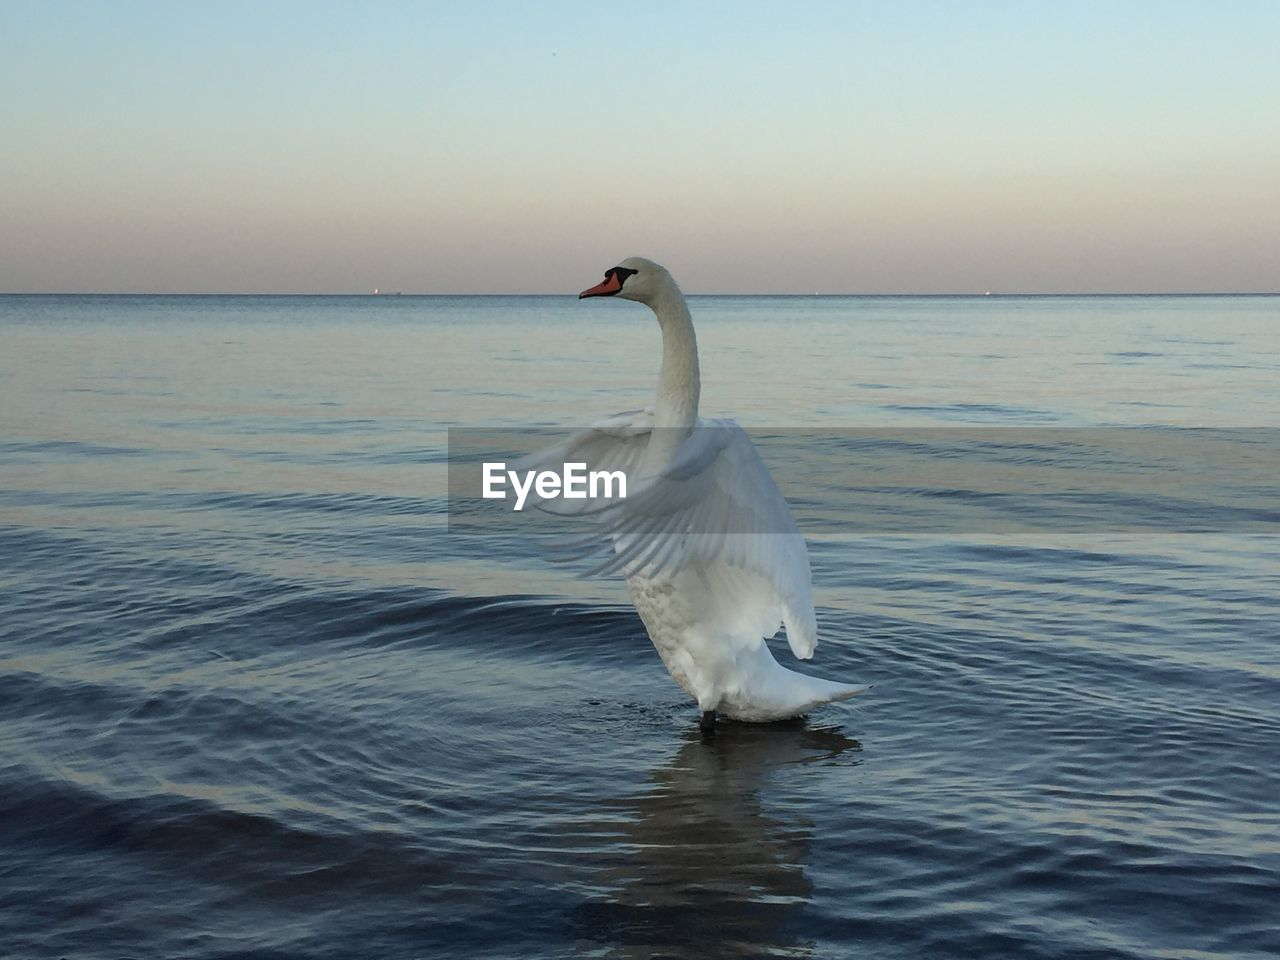 Swan swimming on sea against clear sky during sunset